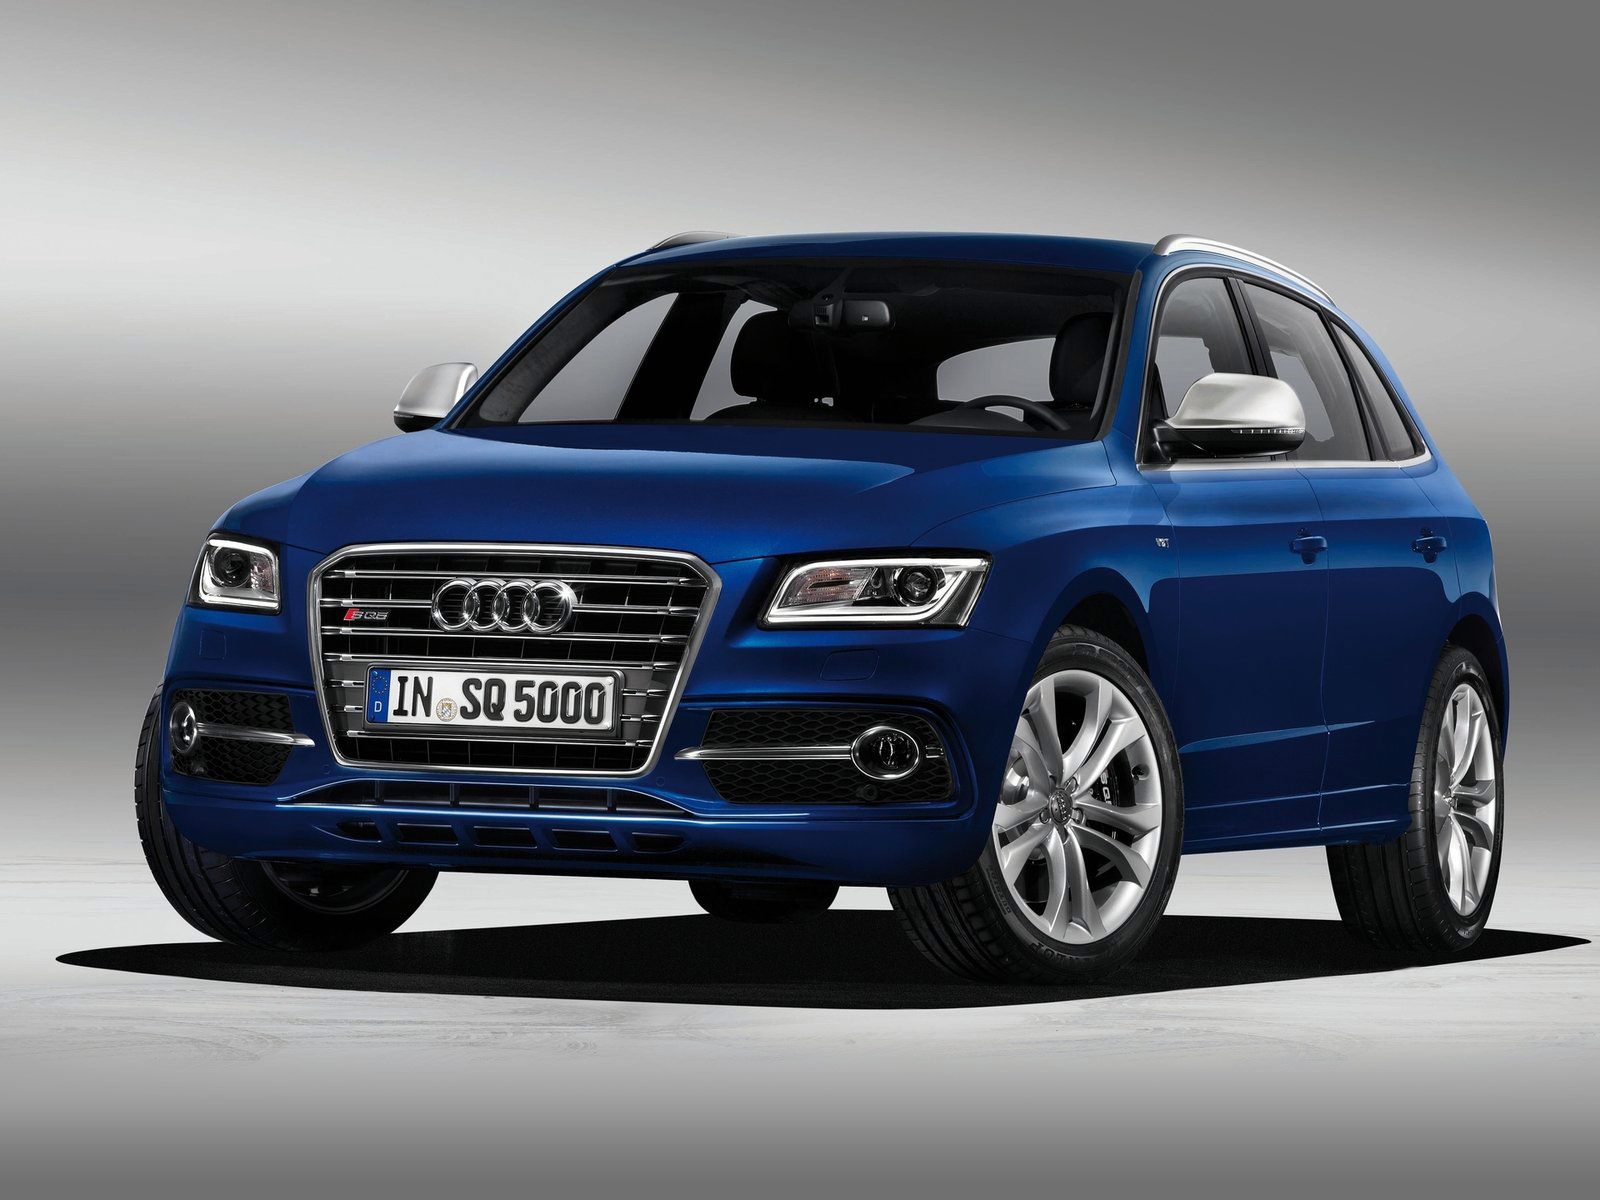 2013 audi sq5 tdi auto insurance information. Black Bedroom Furniture Sets. Home Design Ideas